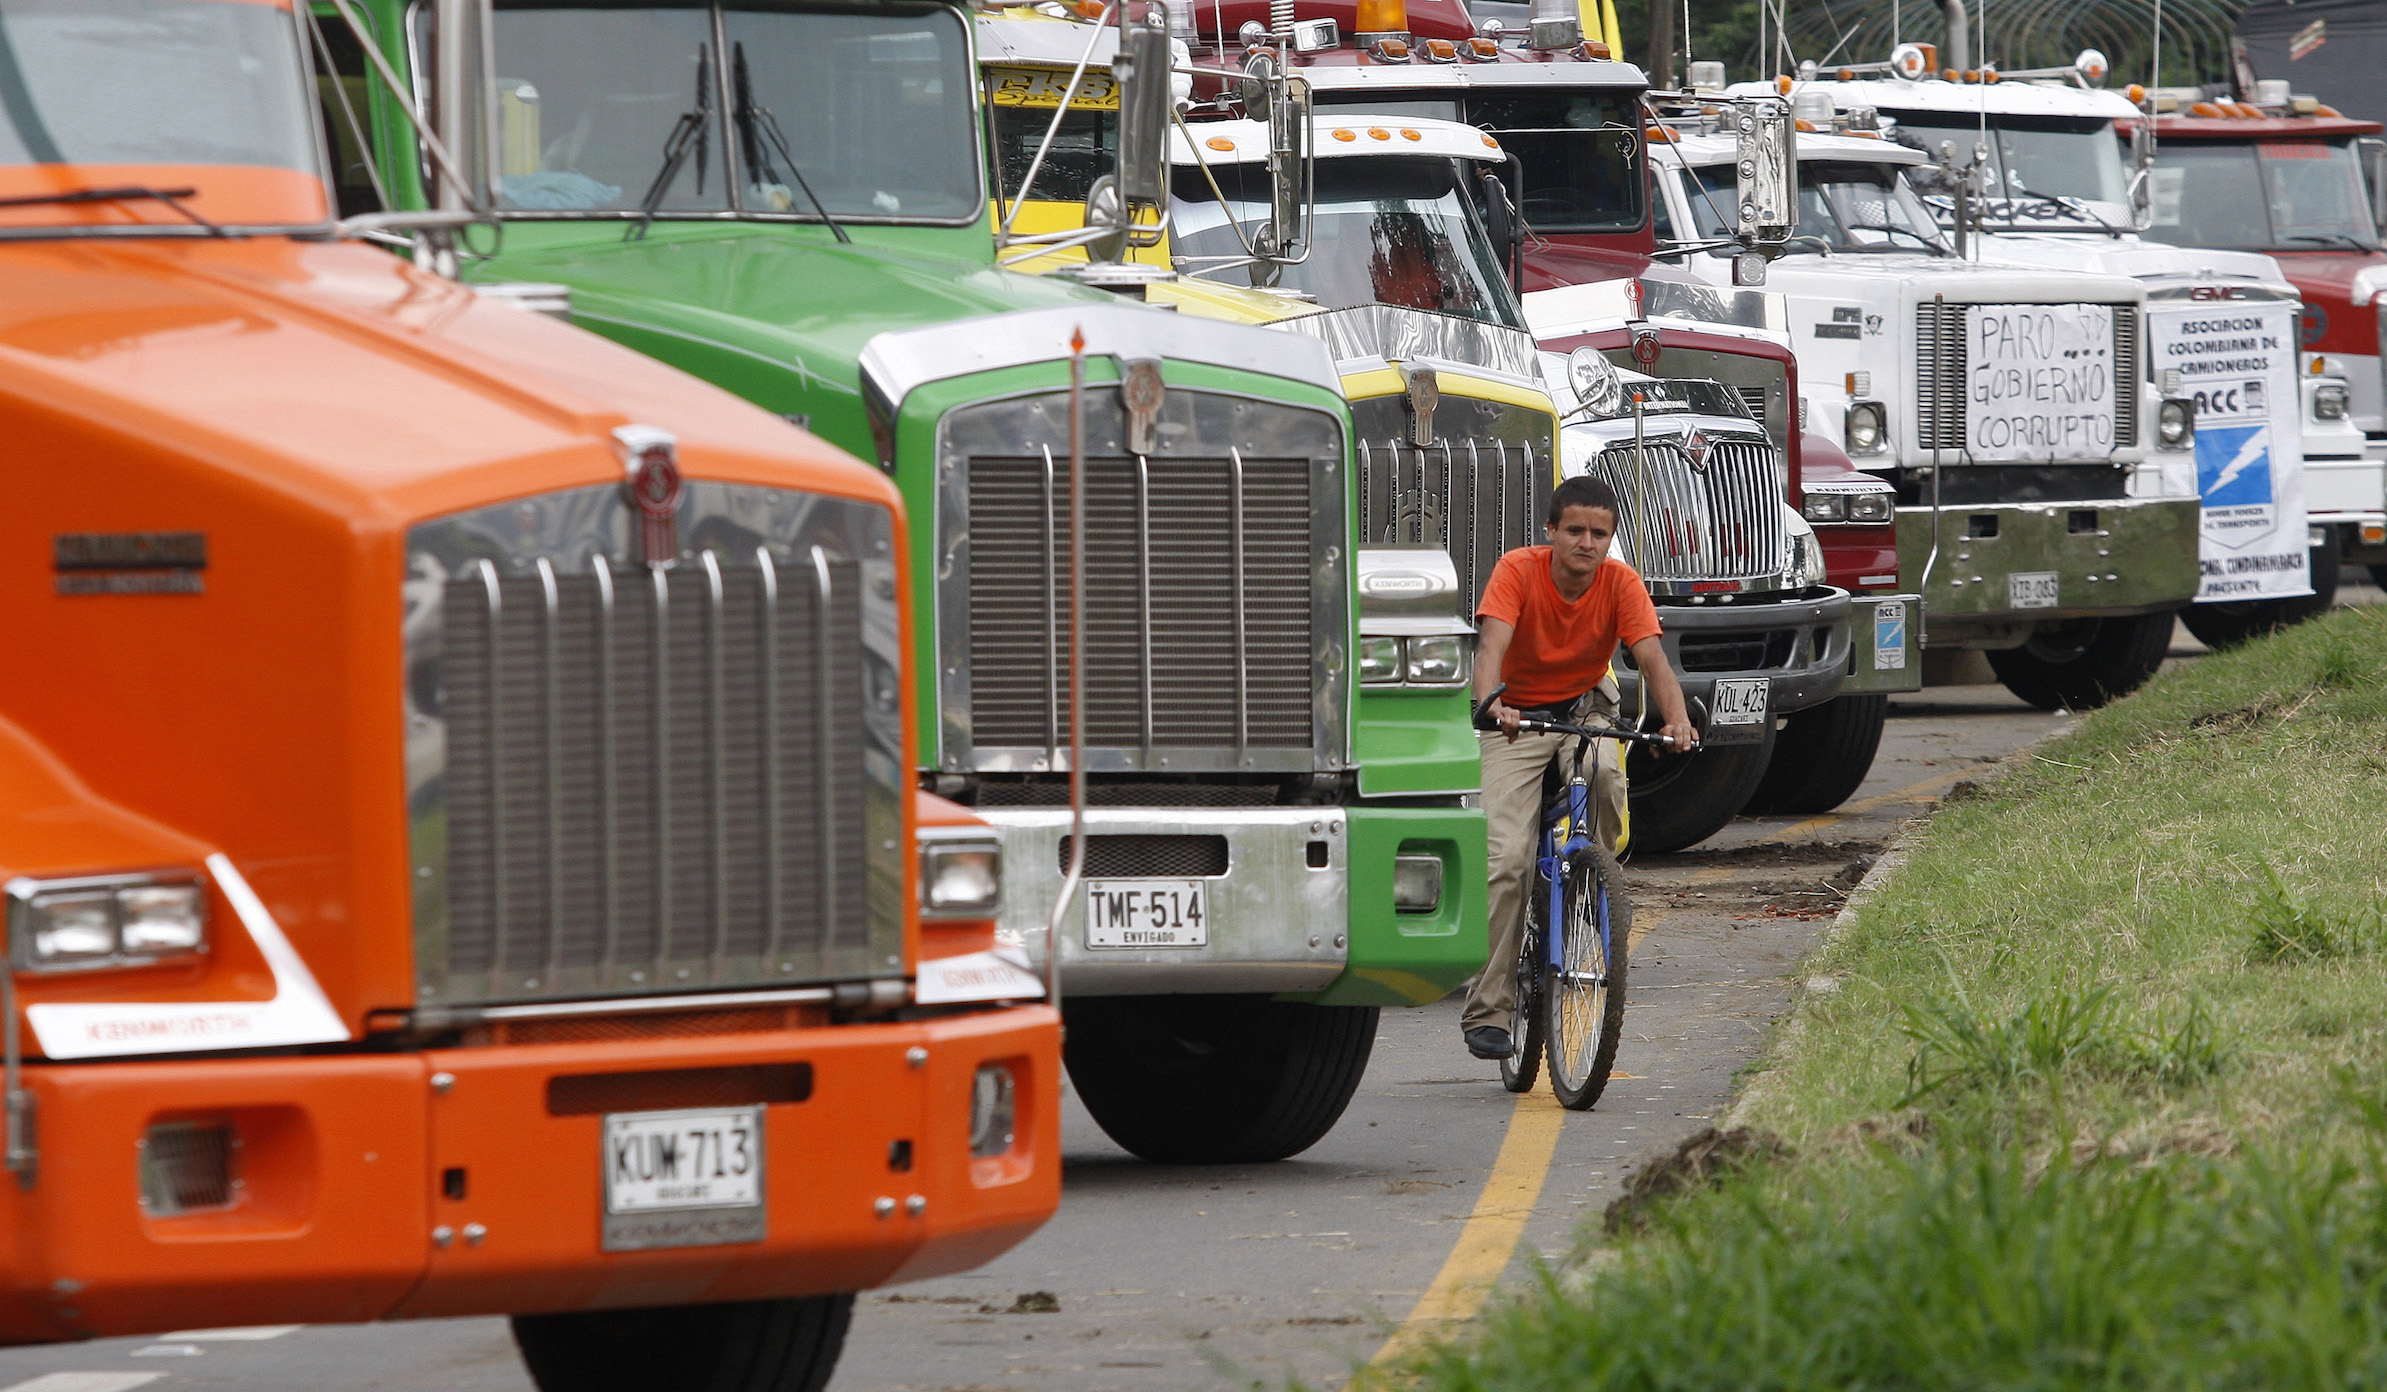 A man rides a bicycle in between trucks during a transporters' strike in Yumbo near Cali February 17, 2011. Tens of thousands of truckers in Colombia went on strike since February 3 over a move by the government to eliminate minimum freight rates, prompting fears of a hit to exports such as coffee if the strike prolongs. REUTERS/Jaime Saldarriaga (COLOMBIA - Tags: TRANSPORT CIVIL UNREST BUSINESS POLITICS) - RTR2IQUE